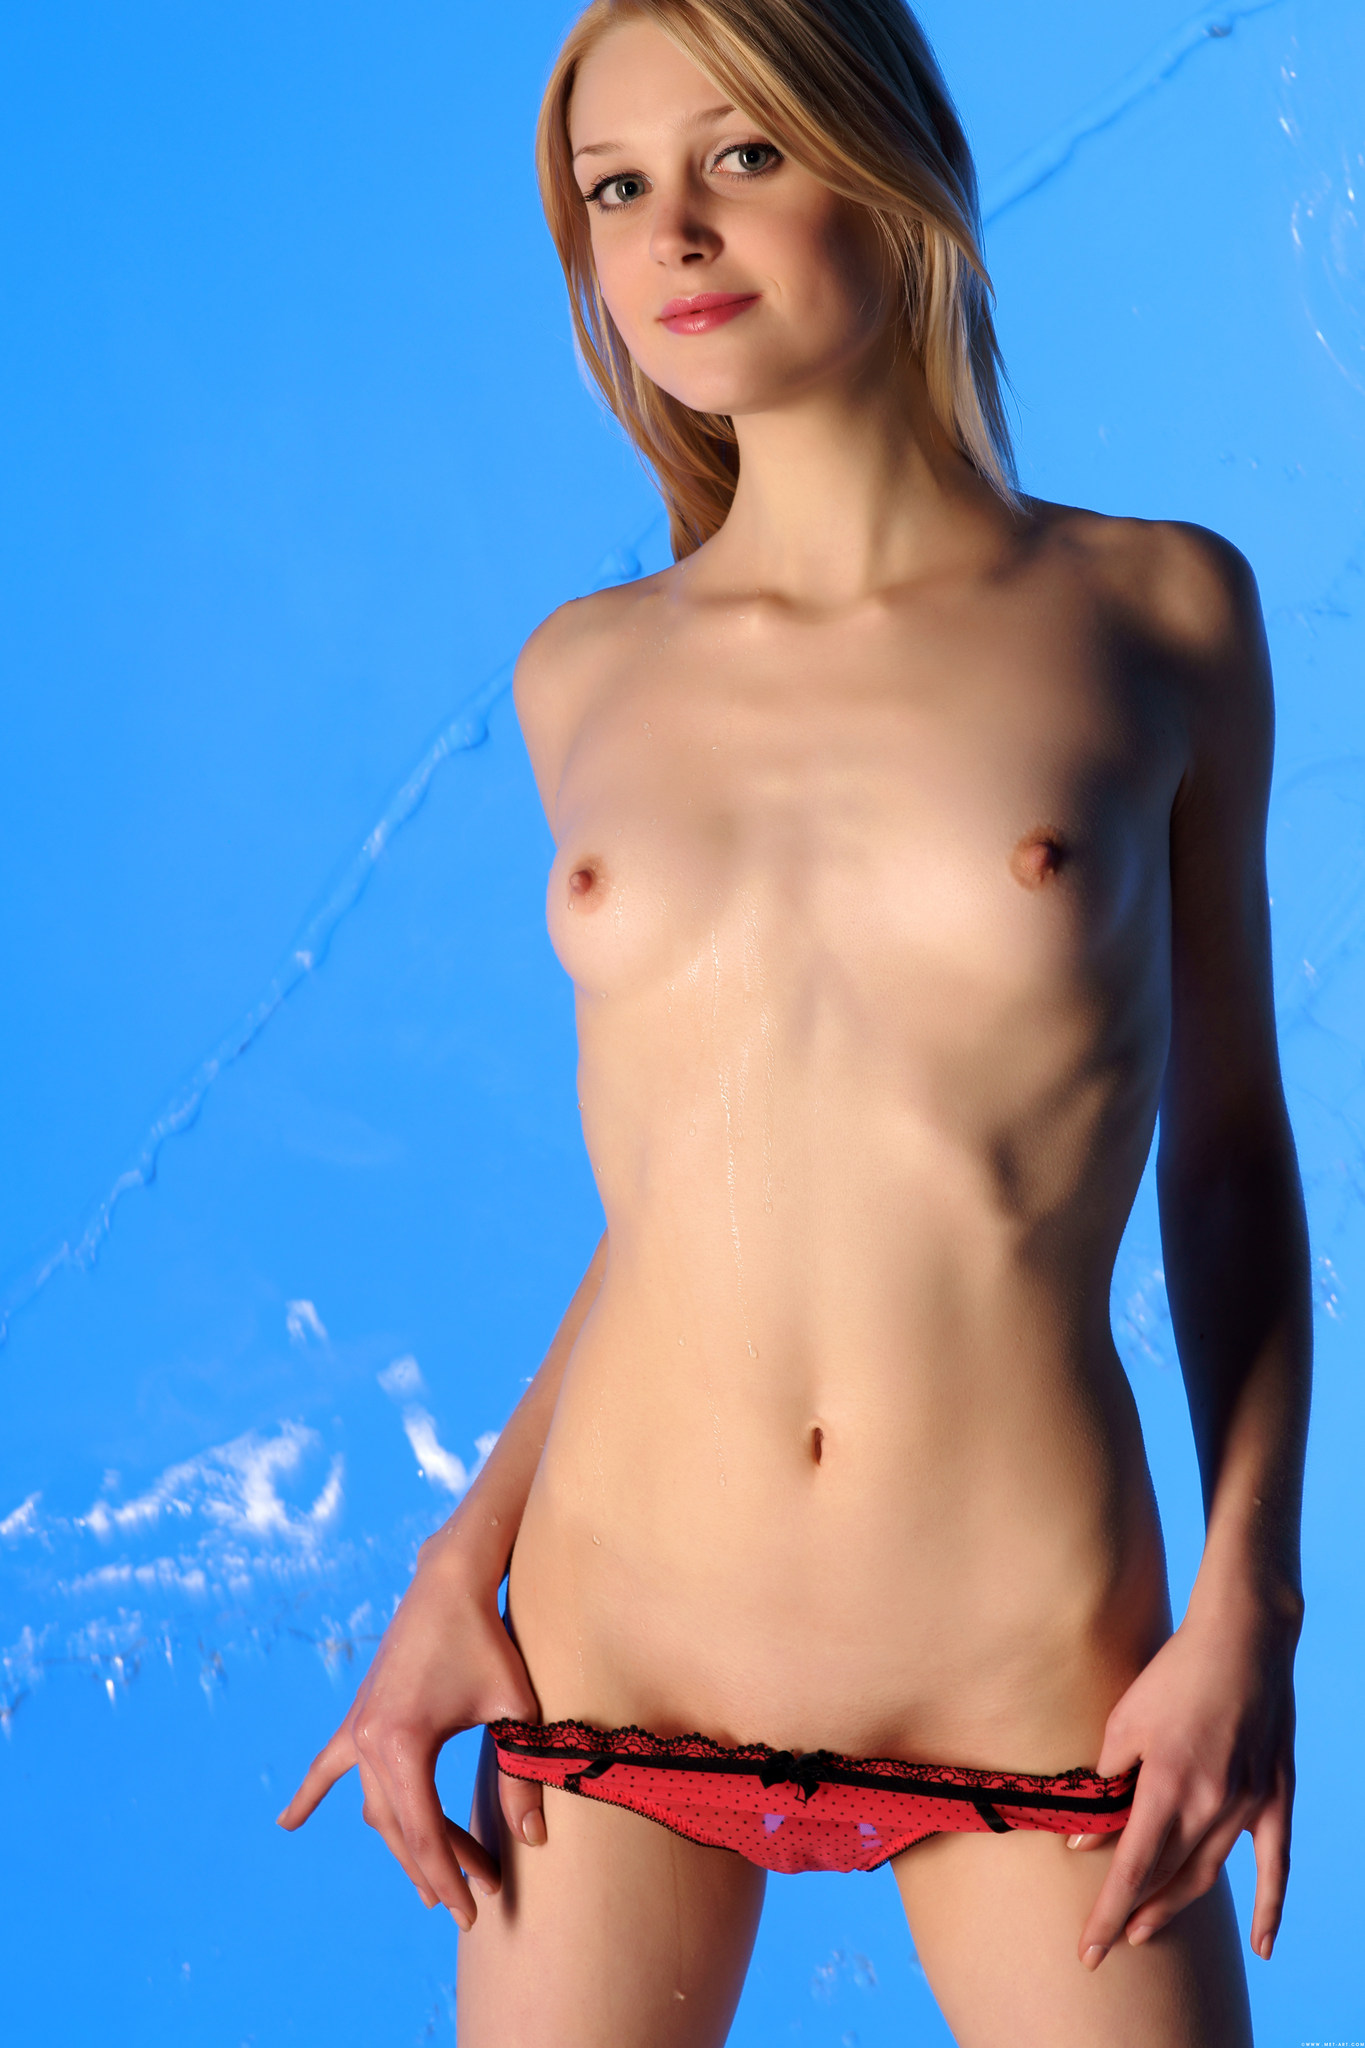 nude-skinny-girls-slim-body-mix-88